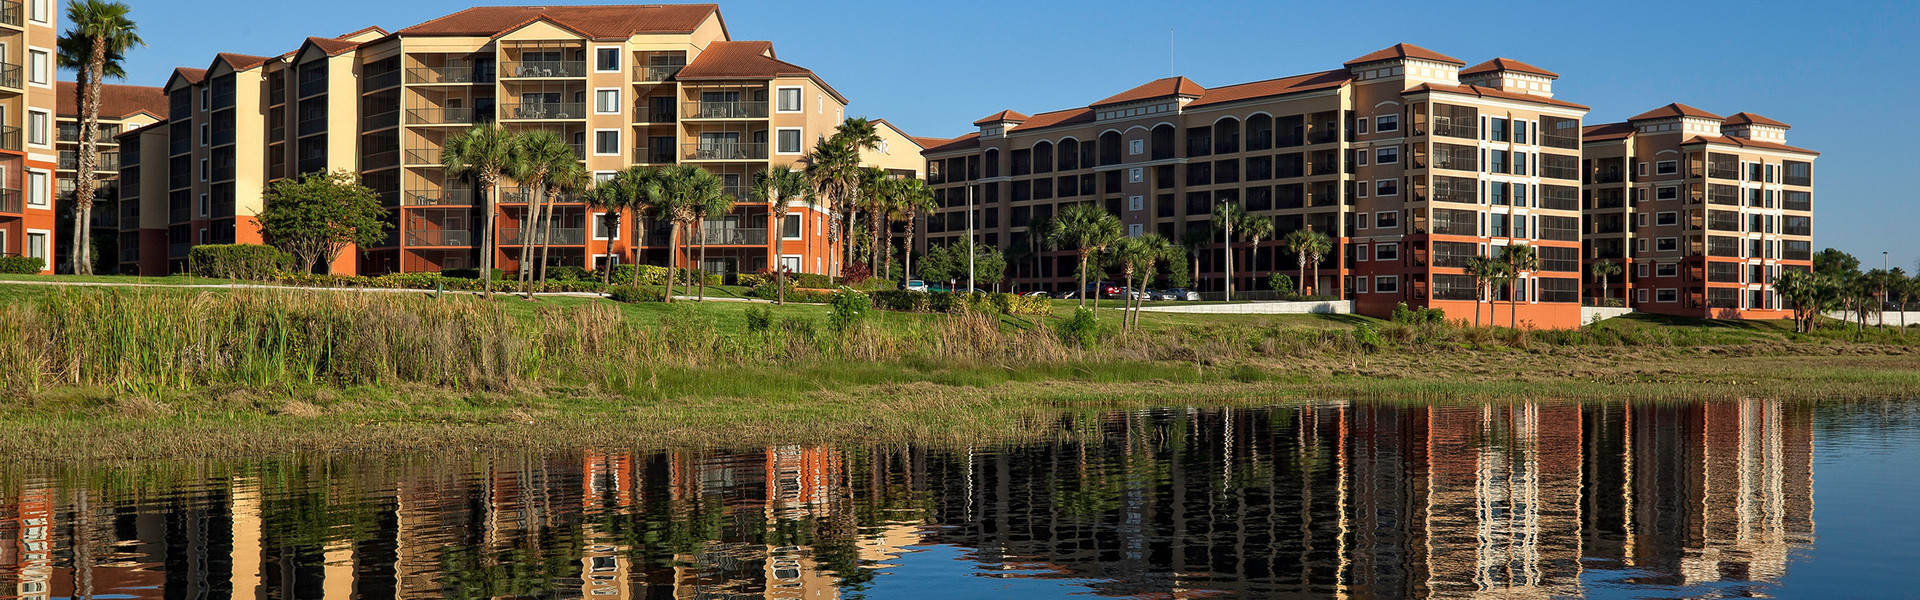 The hotel featuring our Orlando Specials & Resort Offers | Specials at Westgate Lakes Resort & Spa